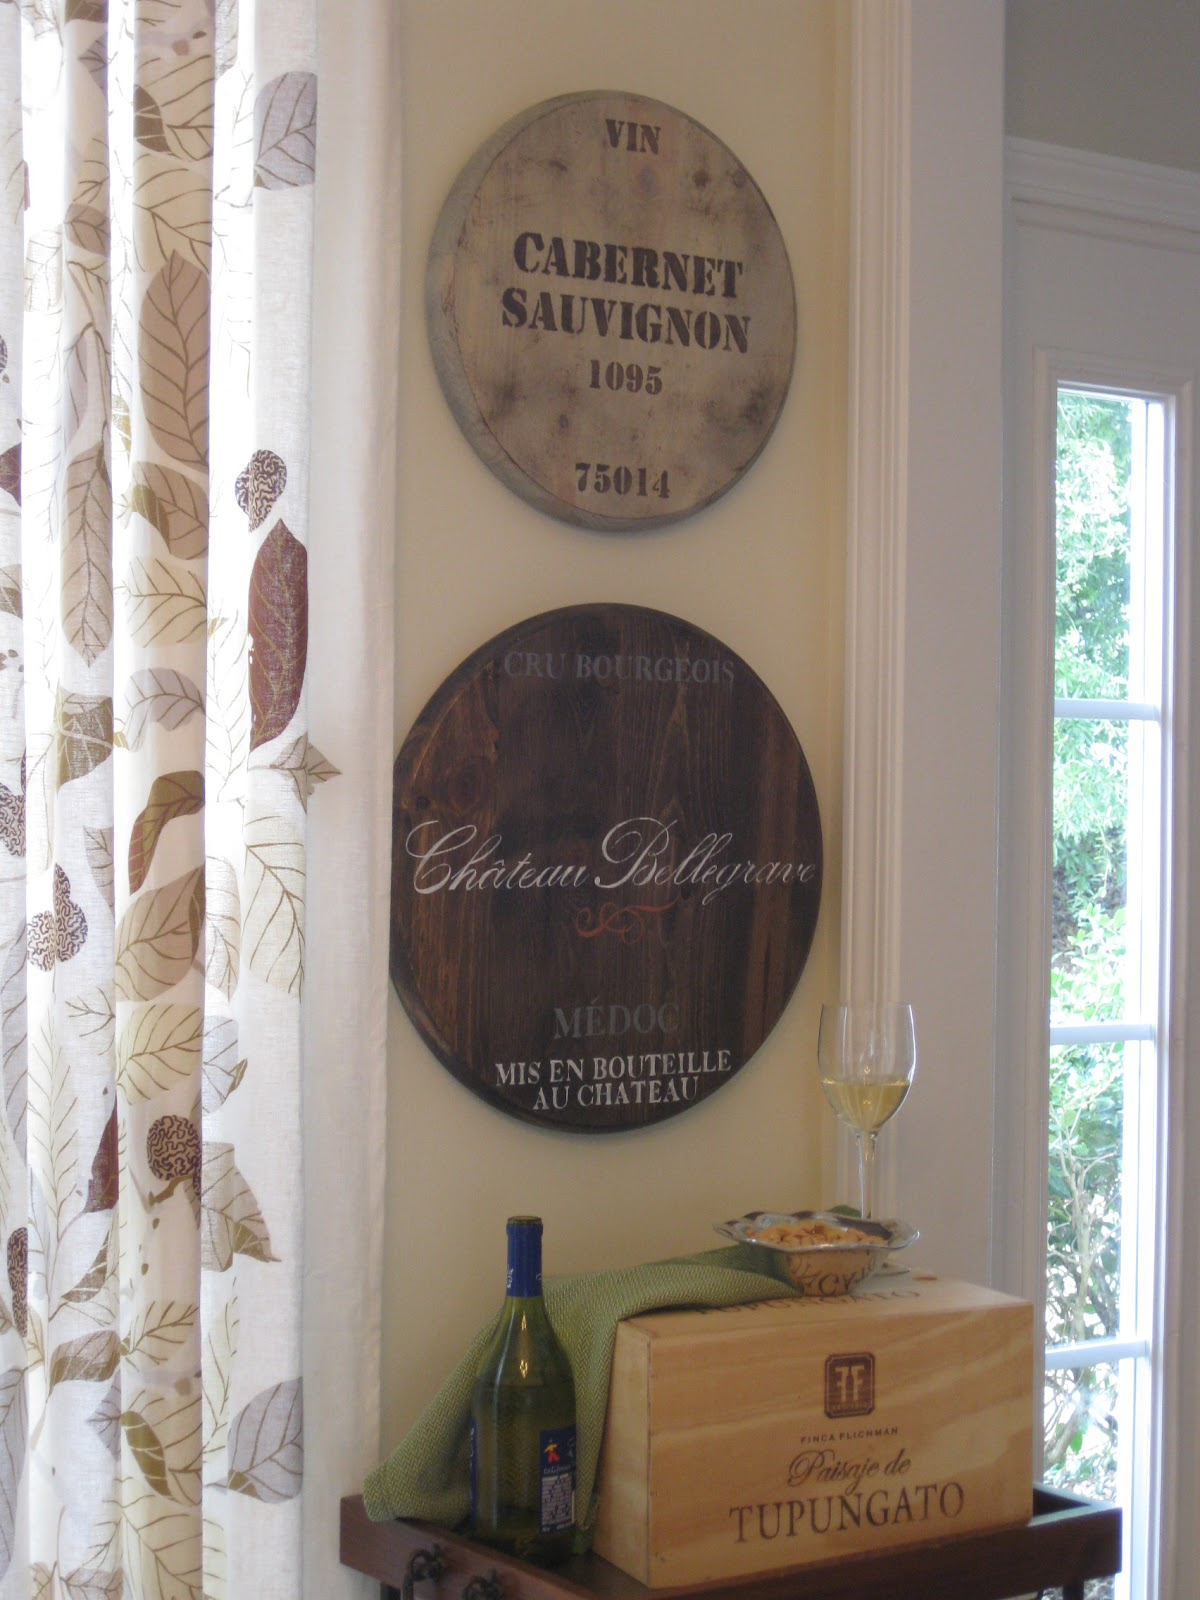 100 ballard designs free shipping code 28 bow window ballard designs free shipping code that mommy blog ballard designs knock off wine barrel plaques